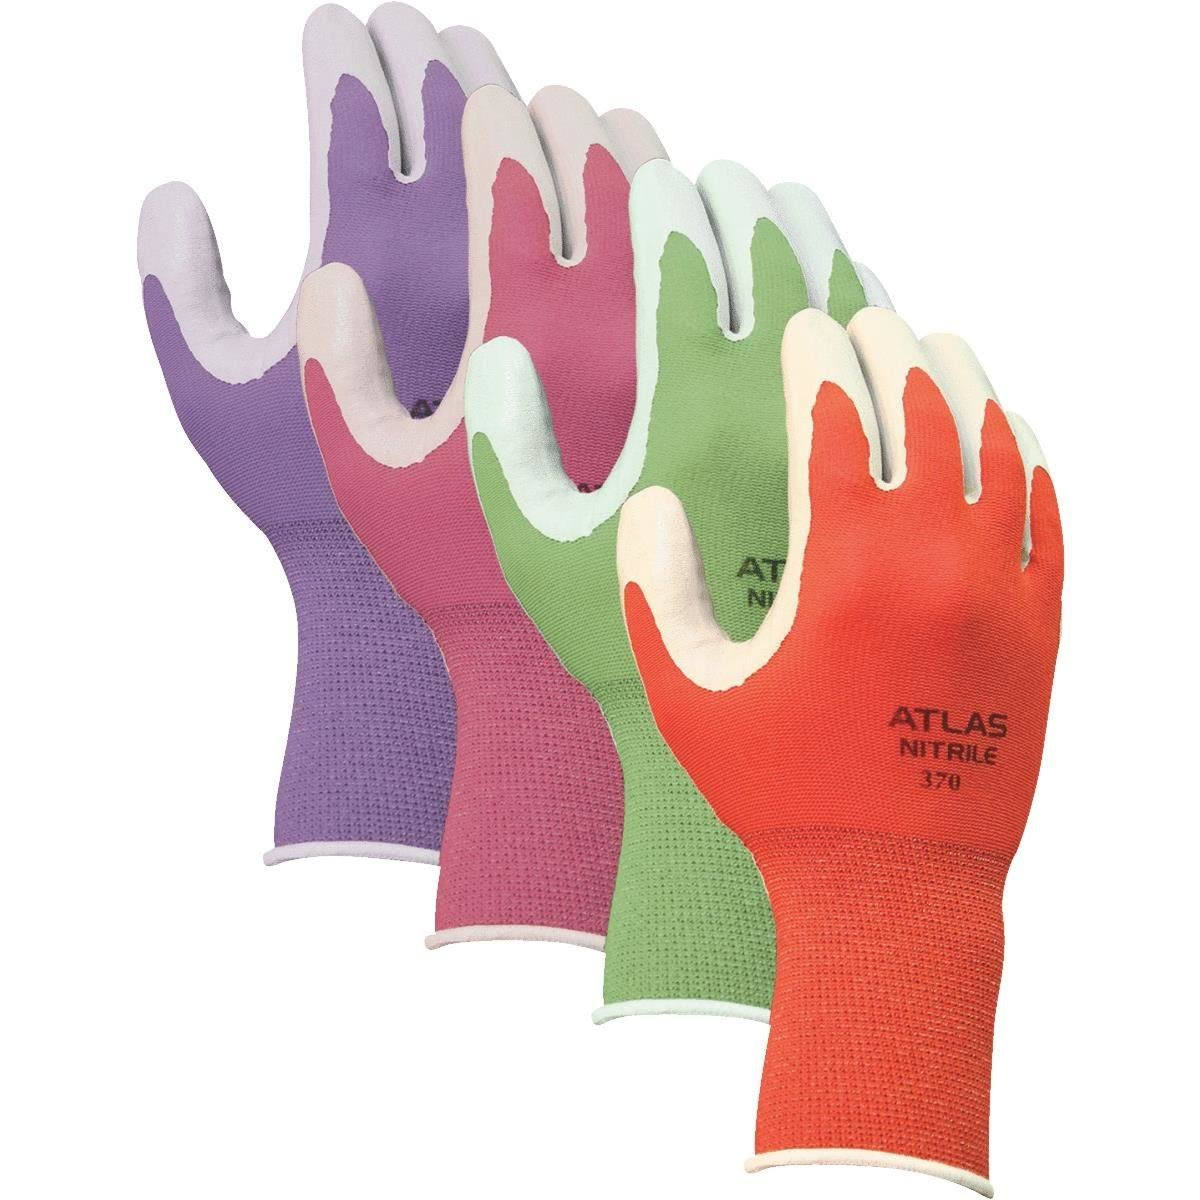 Atlas Nitrile Touch Garden Glove - Large